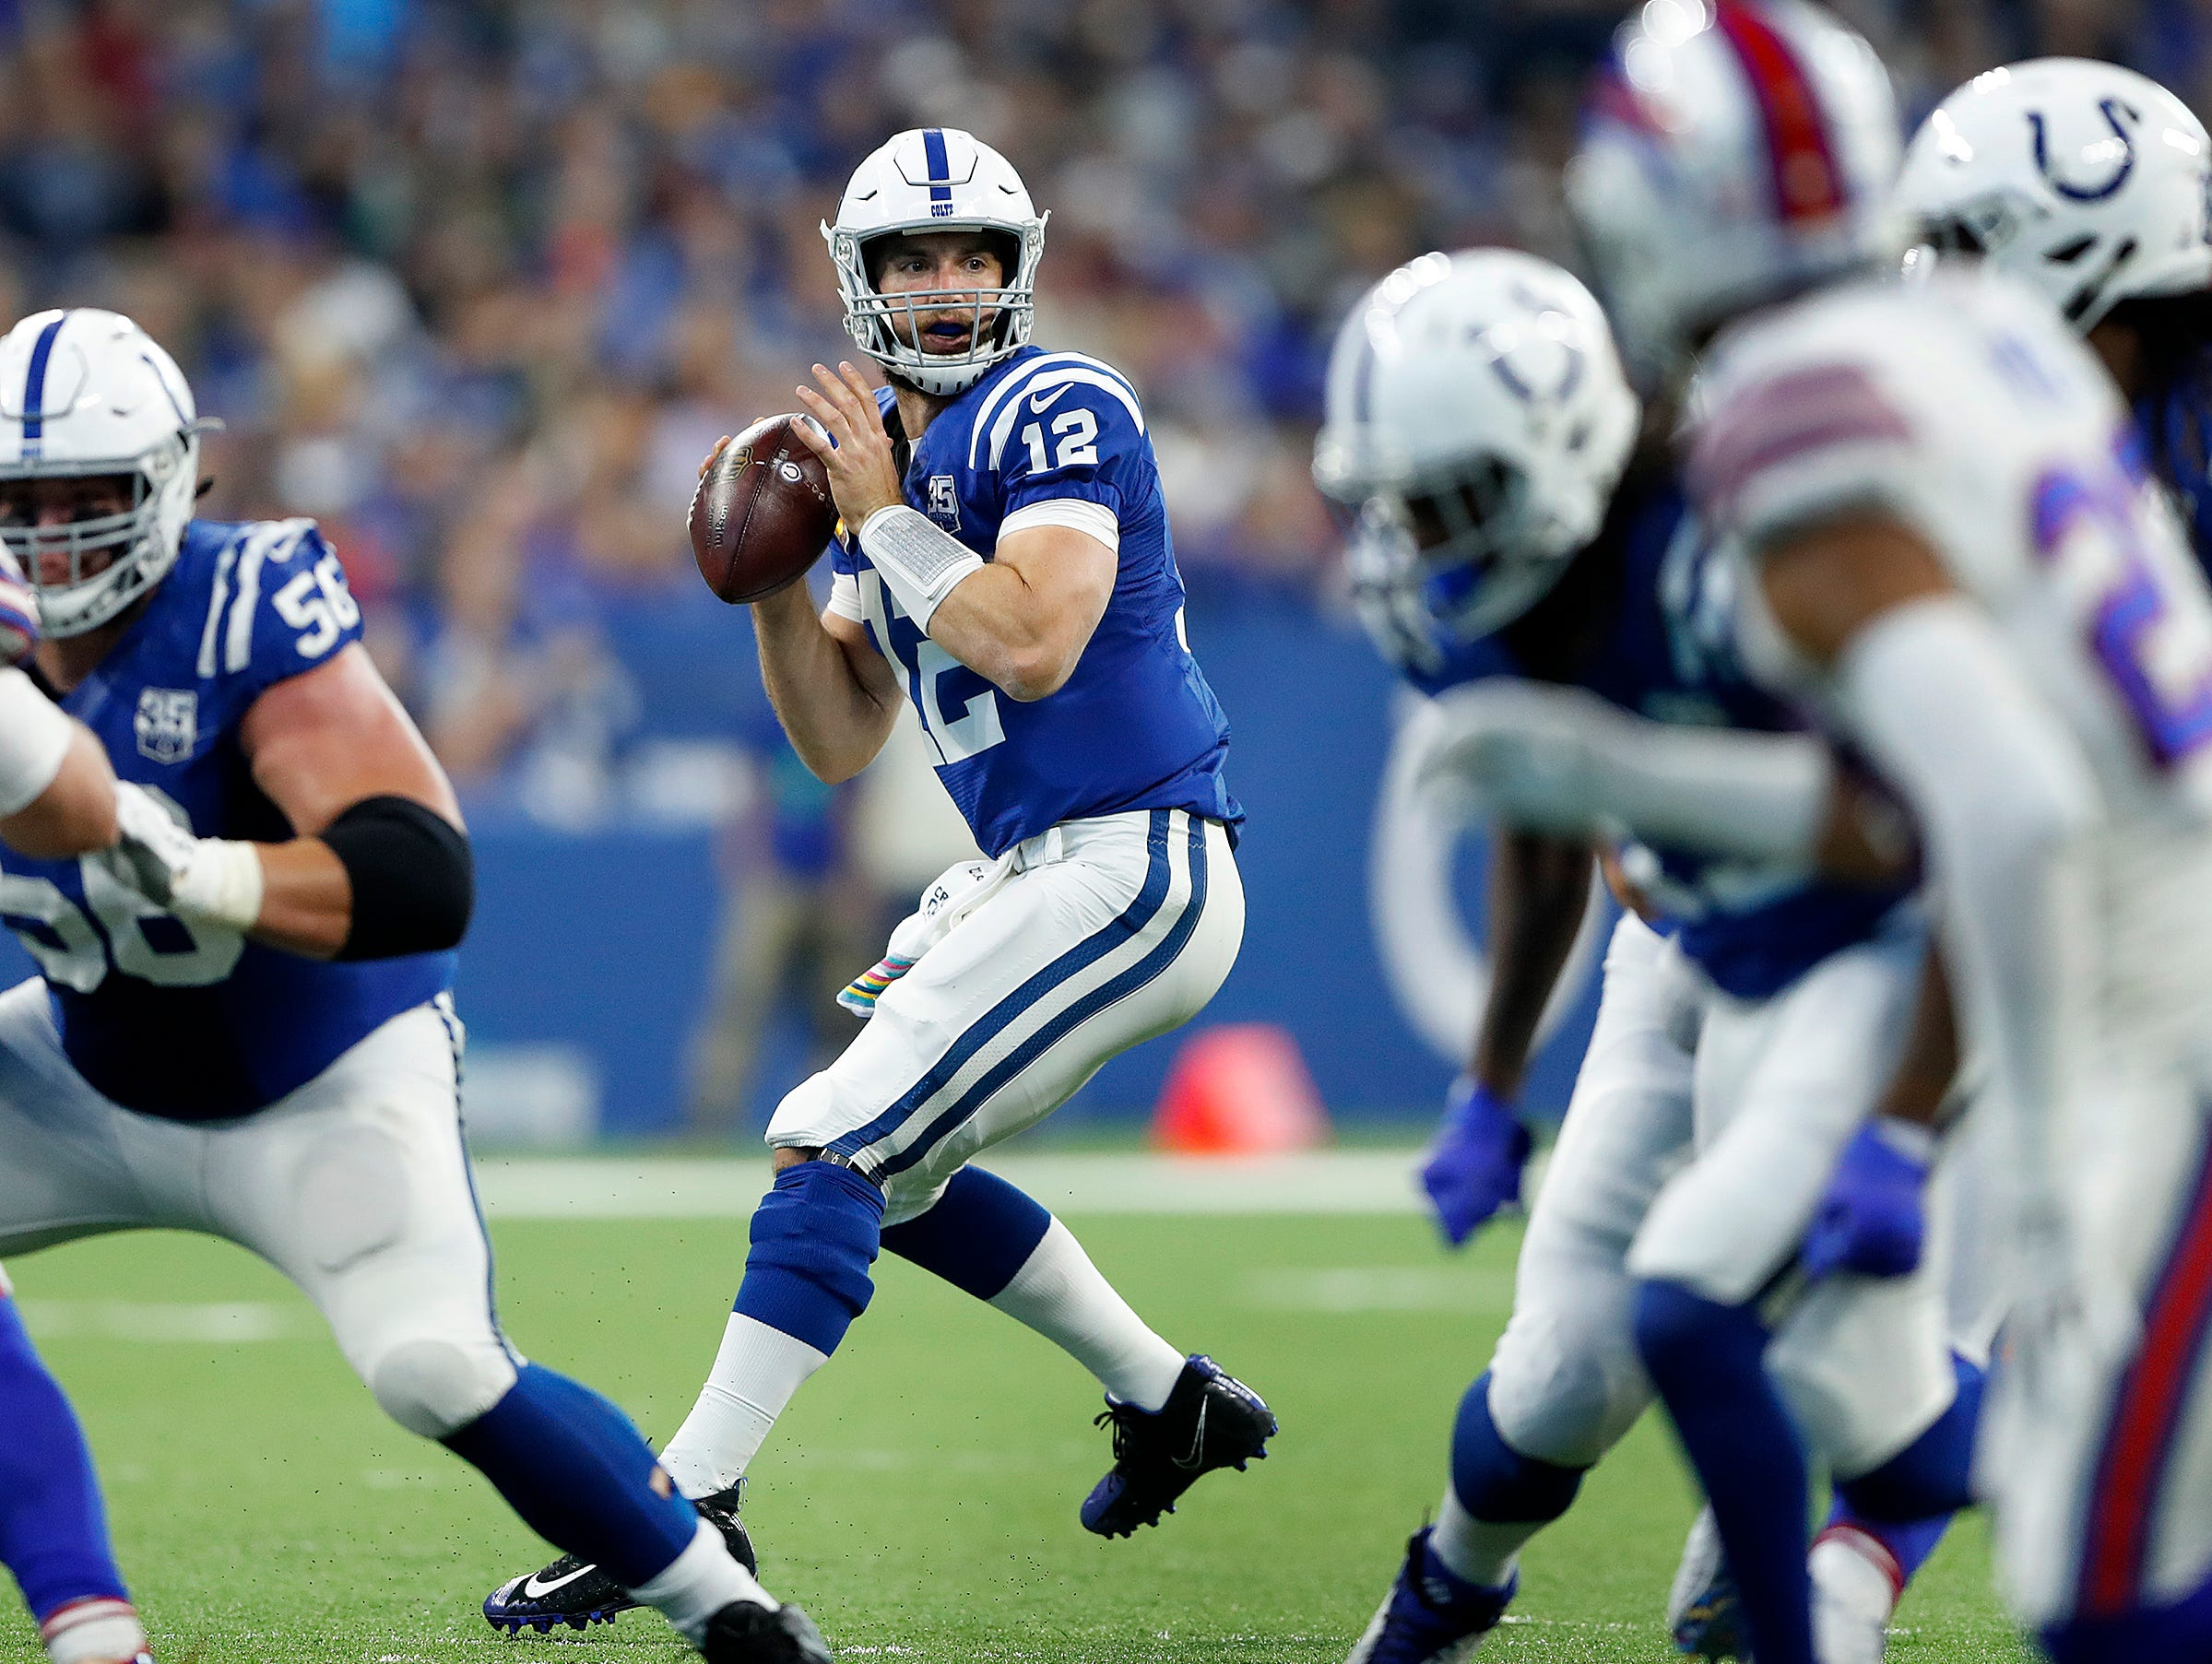 Indianapolis Colts quarterback Andrew Luck (12) drops back to pass in the first half of their game against the Buffalo Bills on Sunday, Oct 21, 2018.